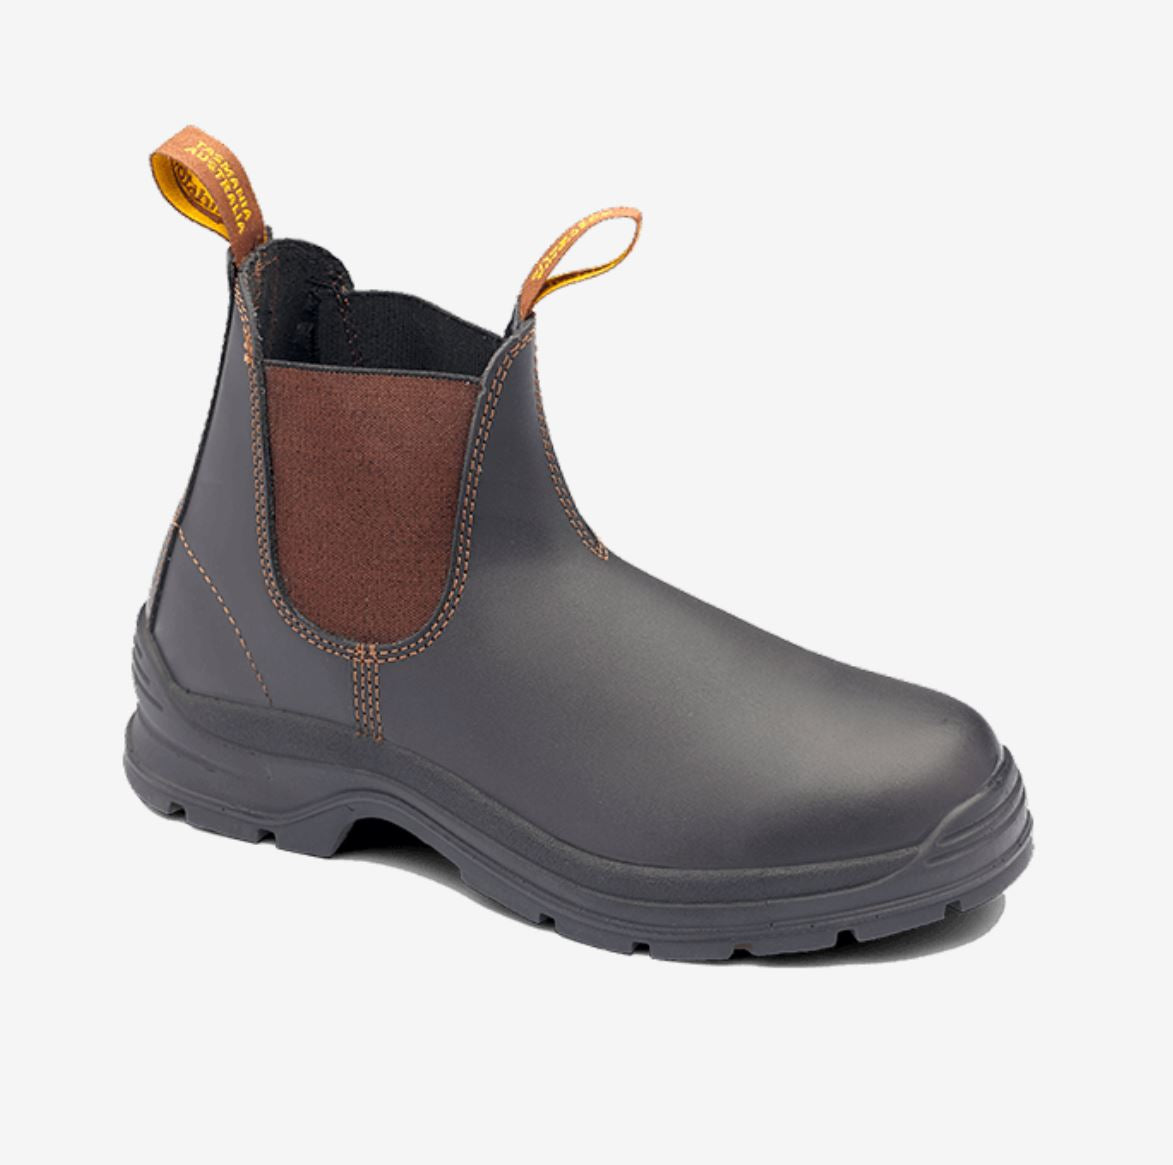 405 Blundstone Non Safety Boot Brown Waxy